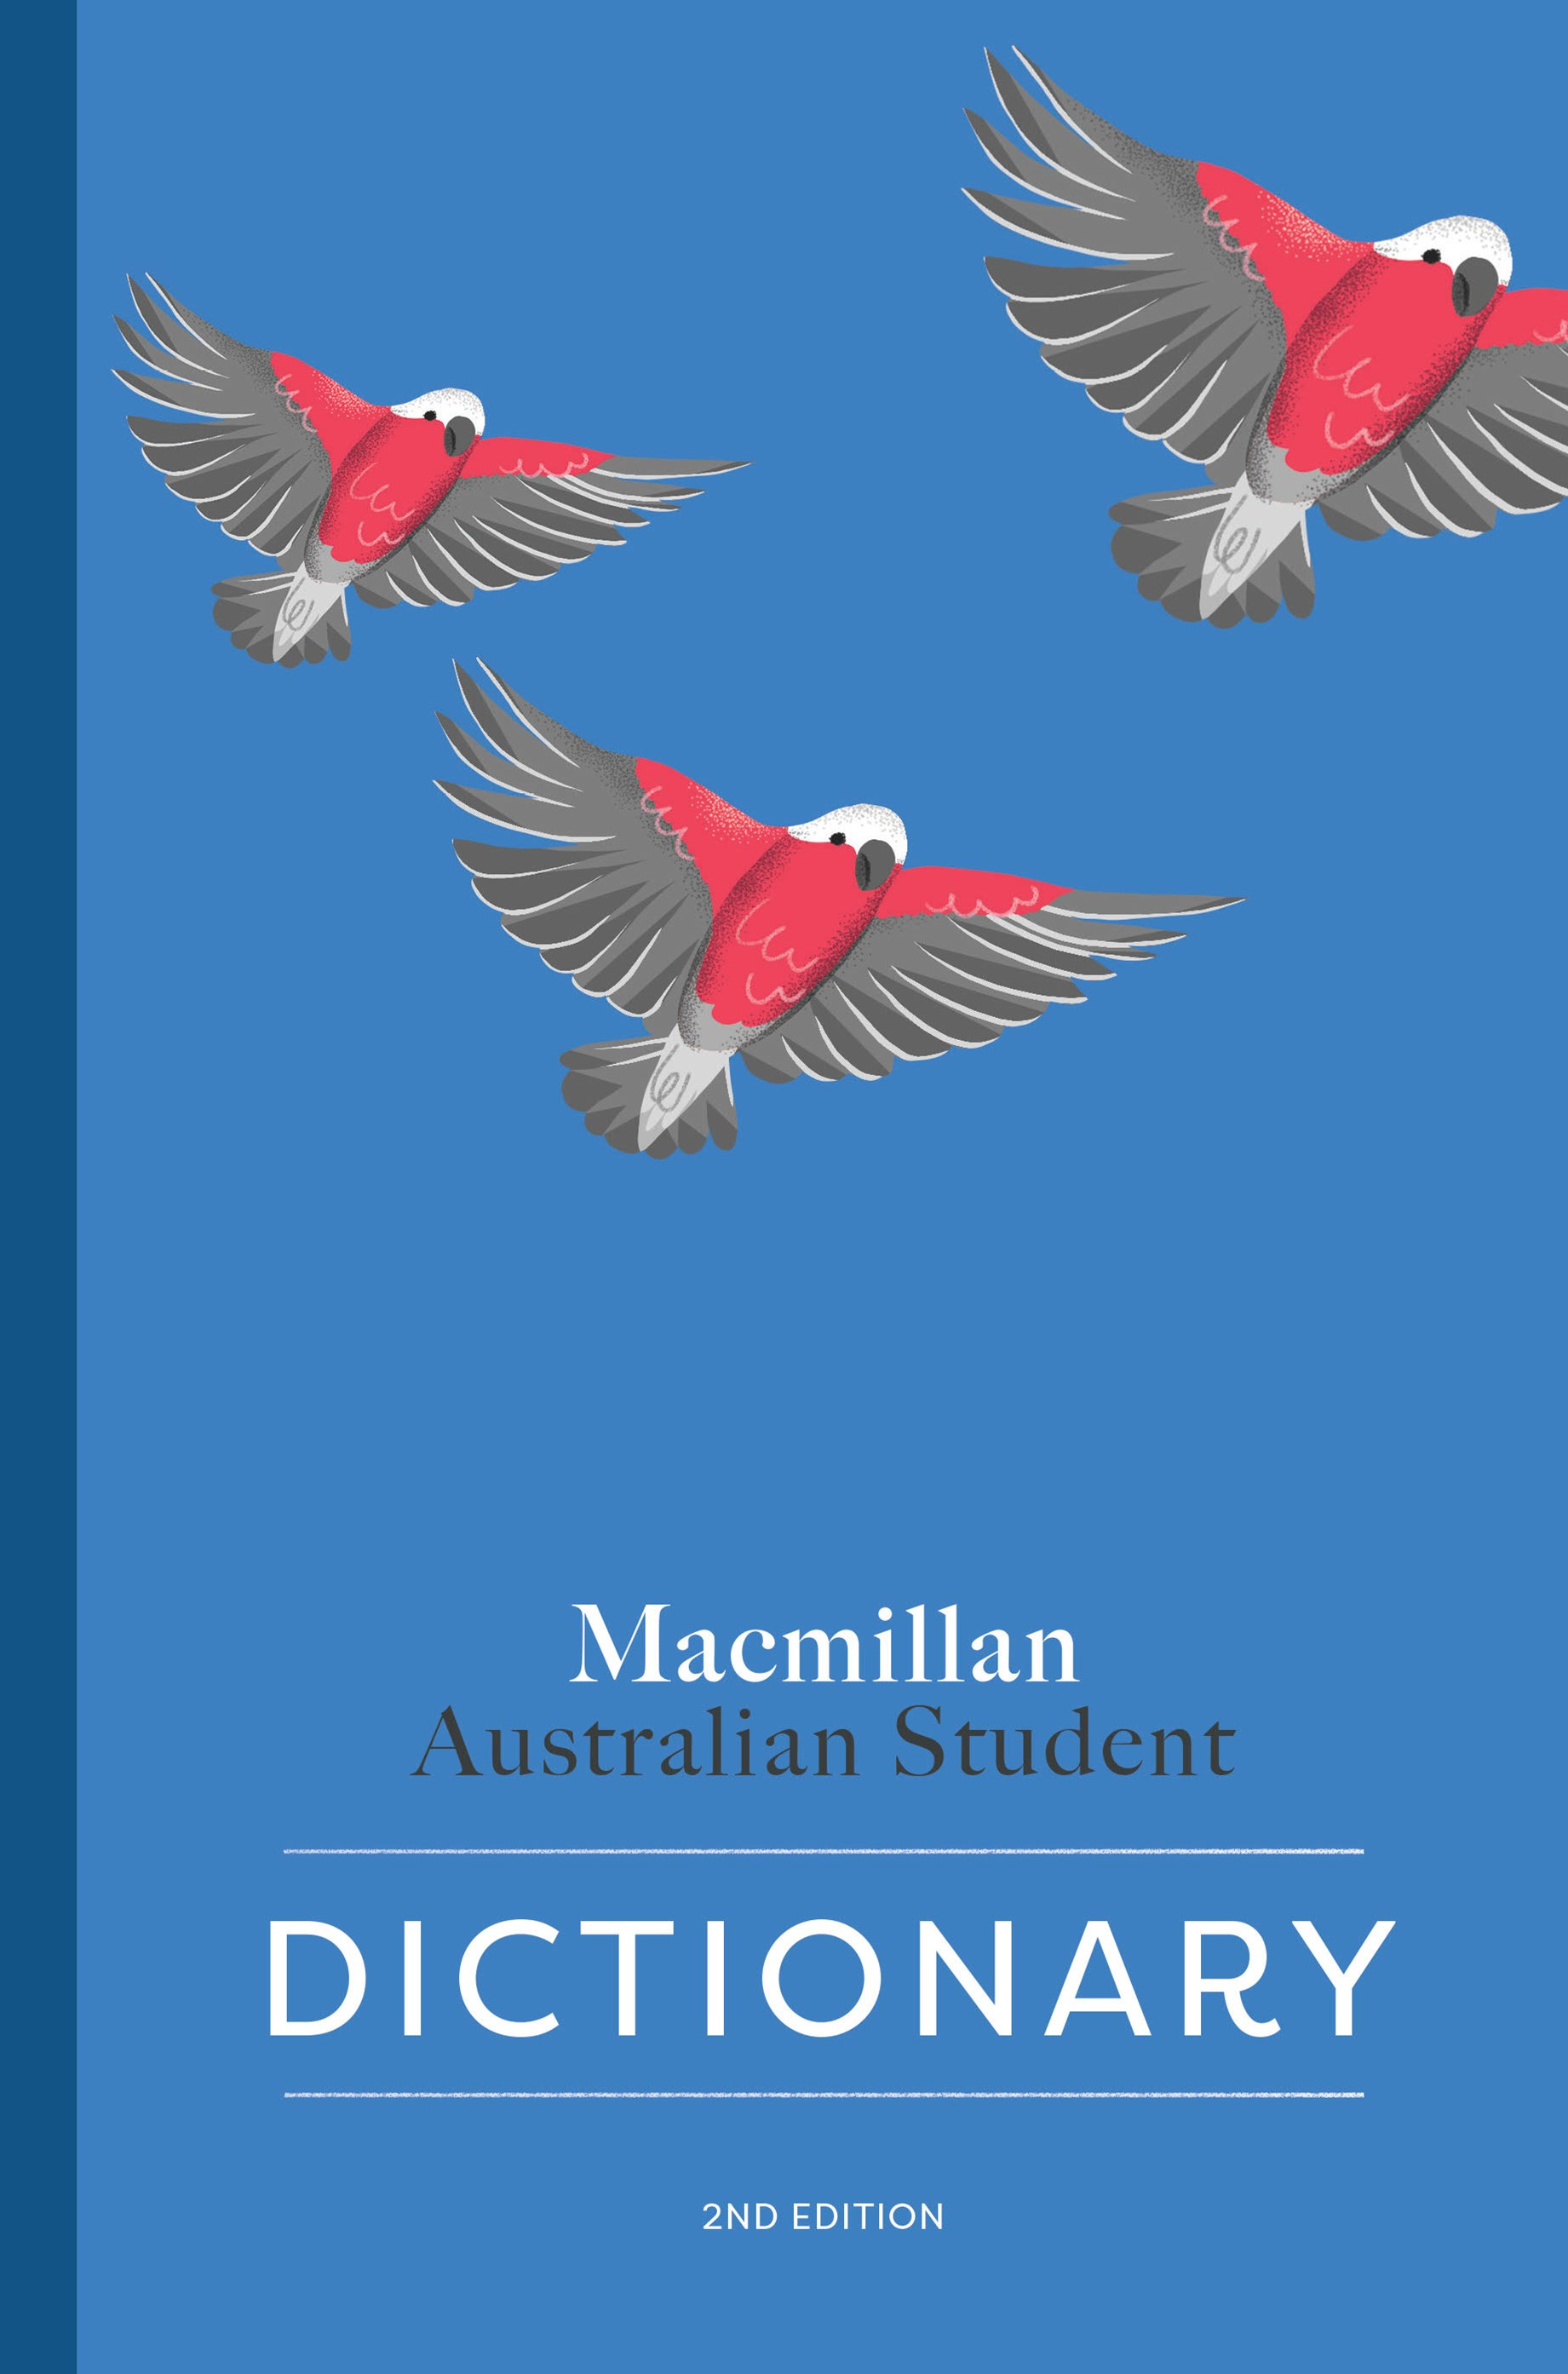 Macmillan Australian Student Dictionary 2nd Edition